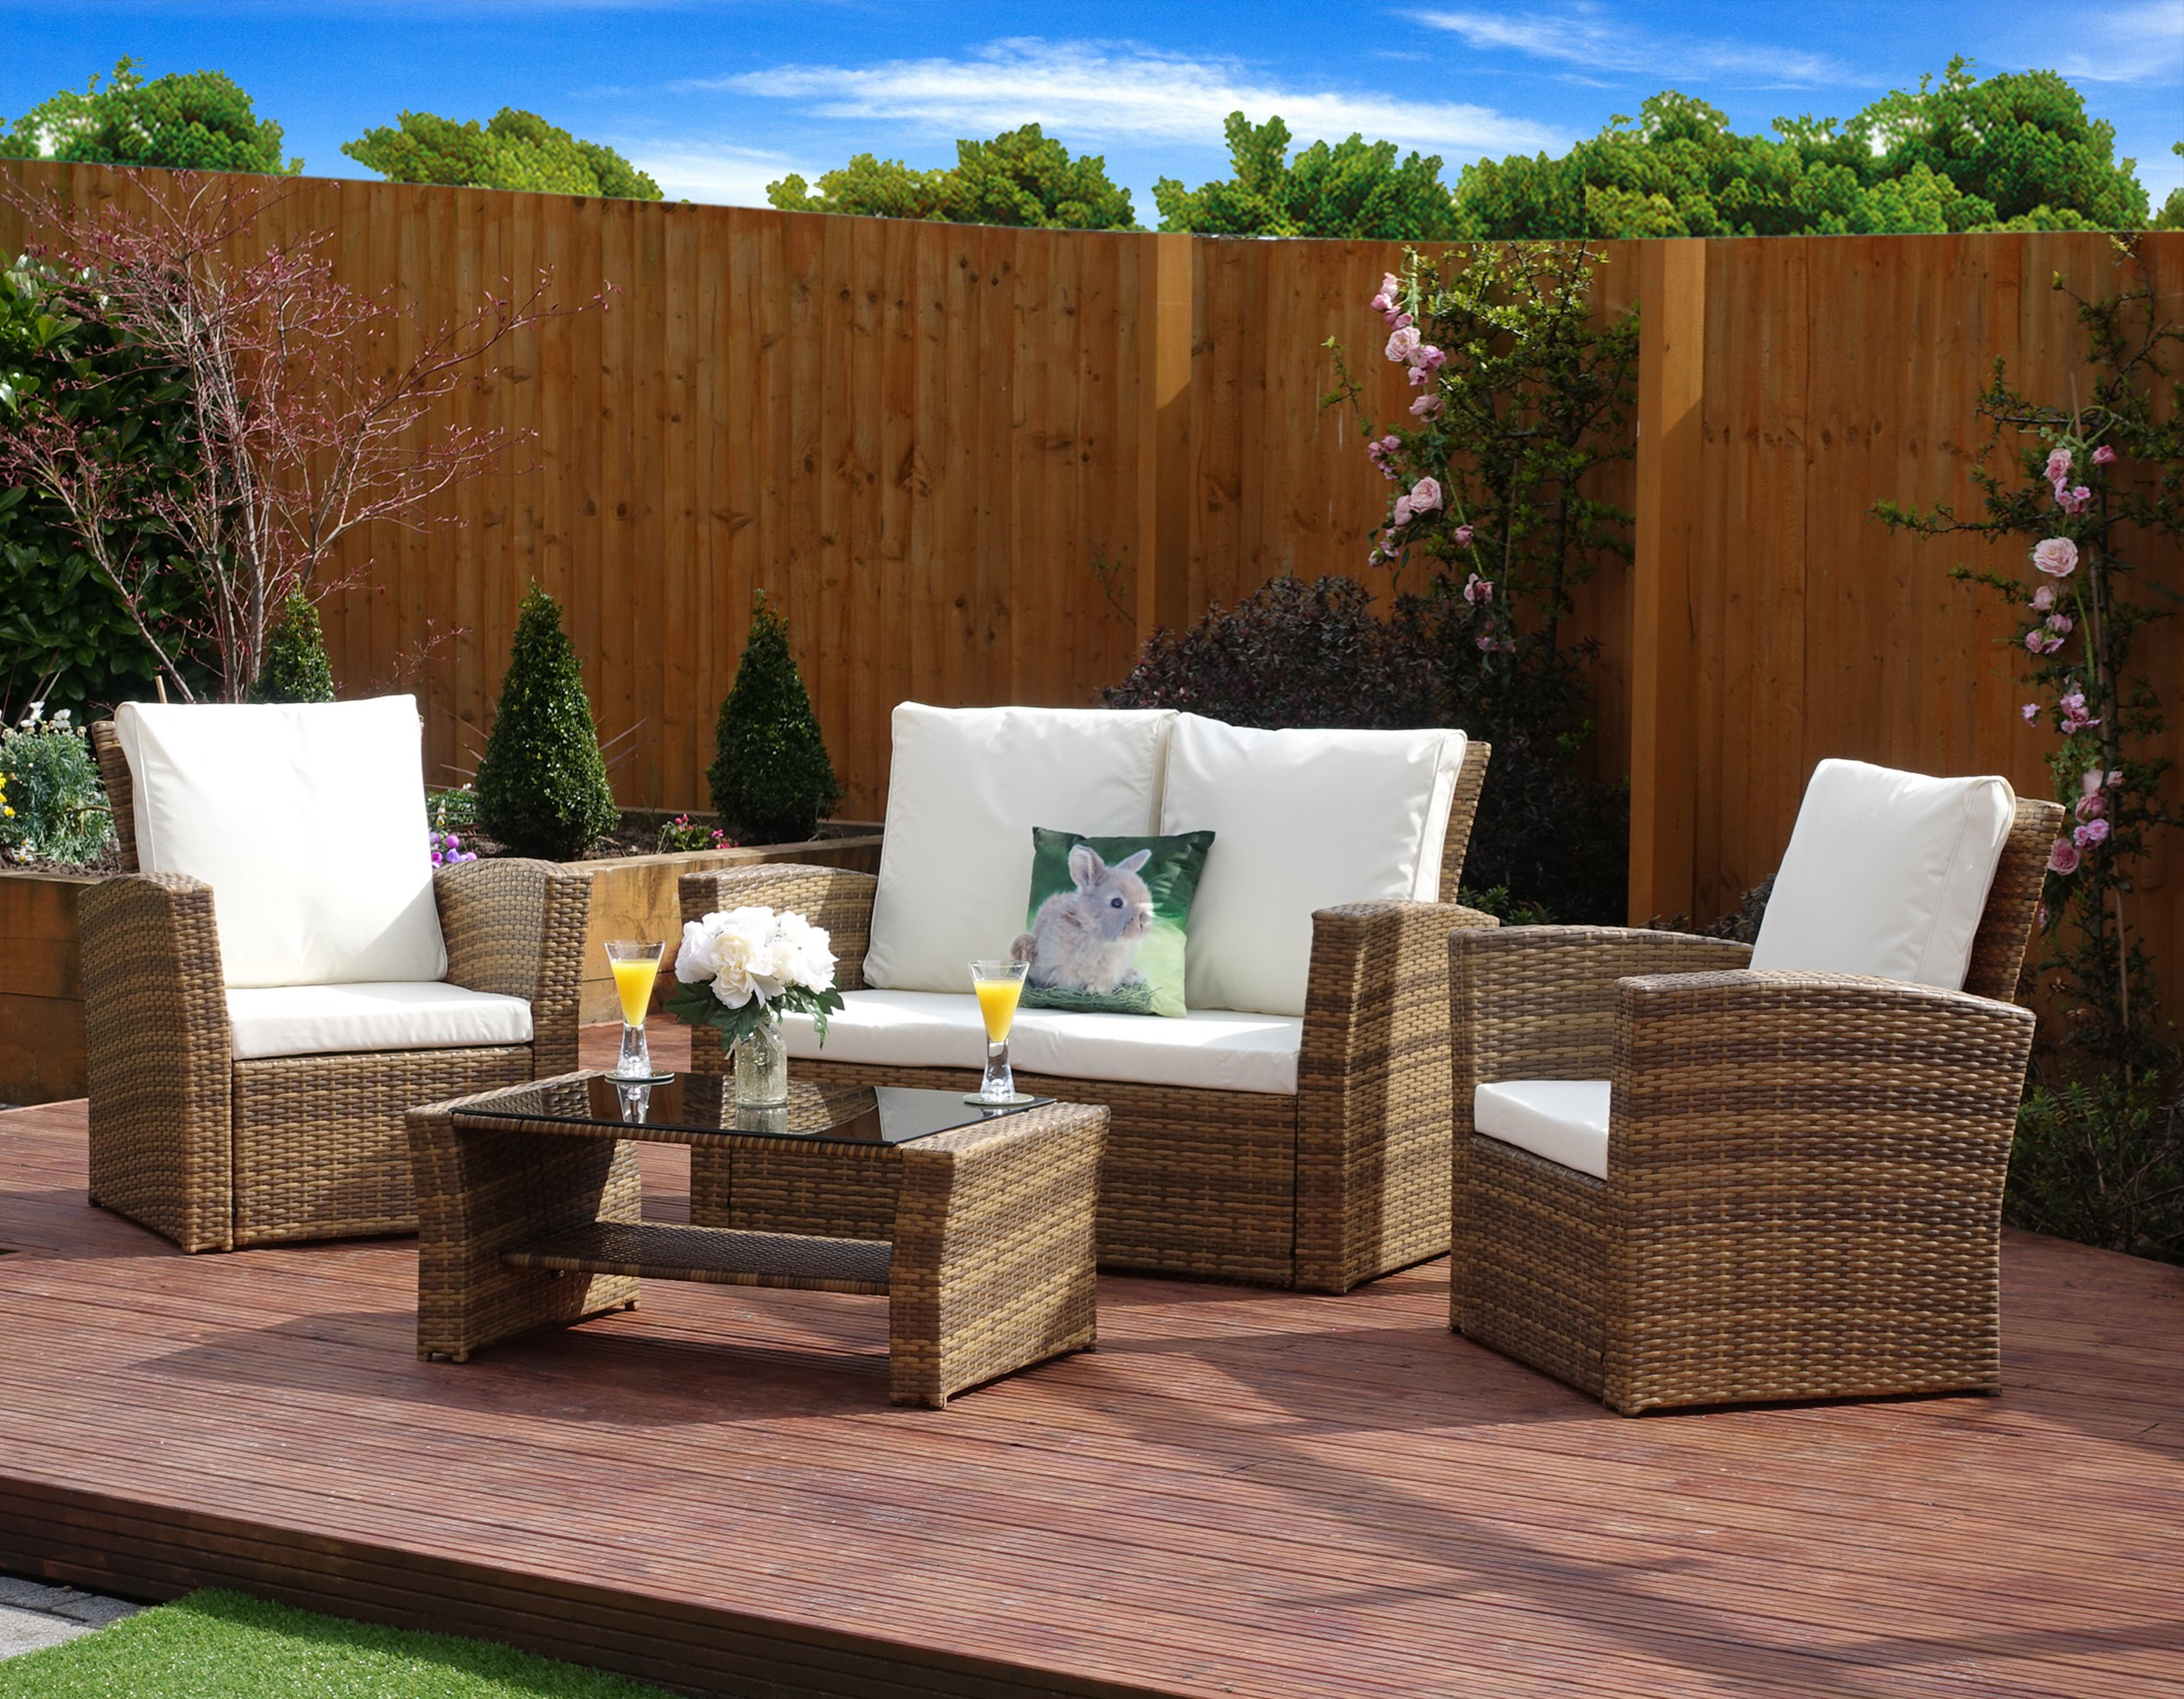 Florence 8 Piece Rattan Sofa Set With Cushions 4 Piece Algarve Rattan Sofa Lounge Set For Patios